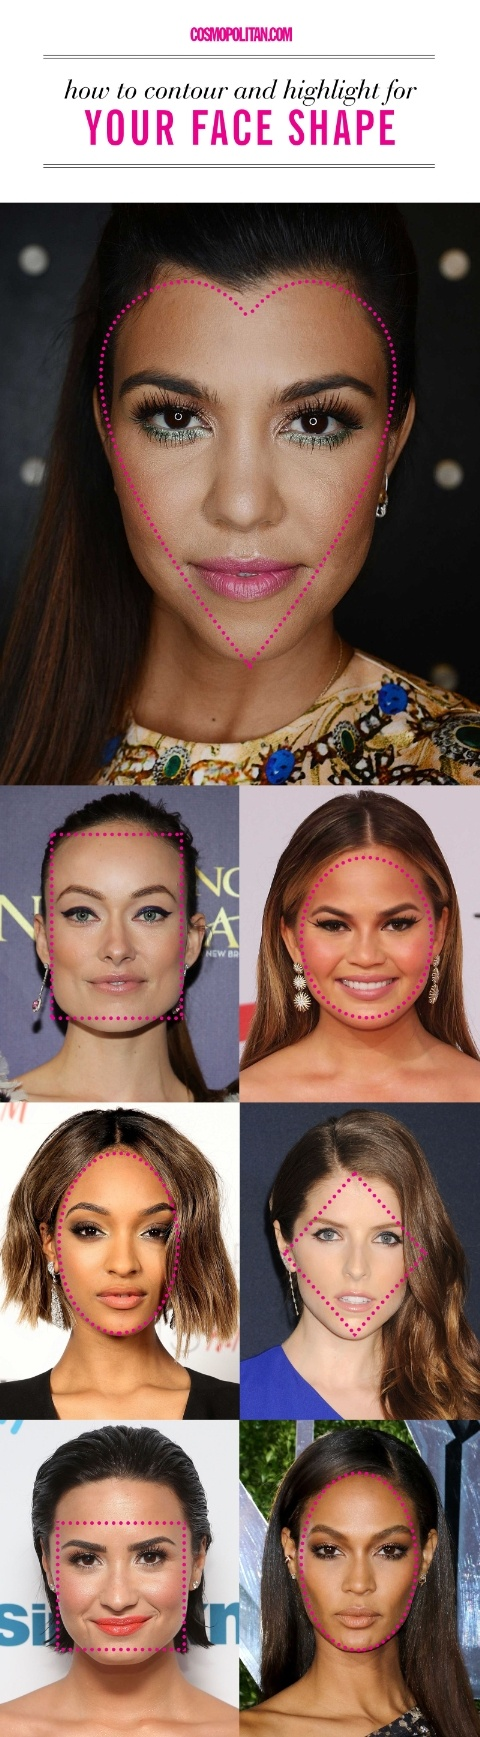 Best eye makeup for face shape onvacations image for Motores y vehiculos nj